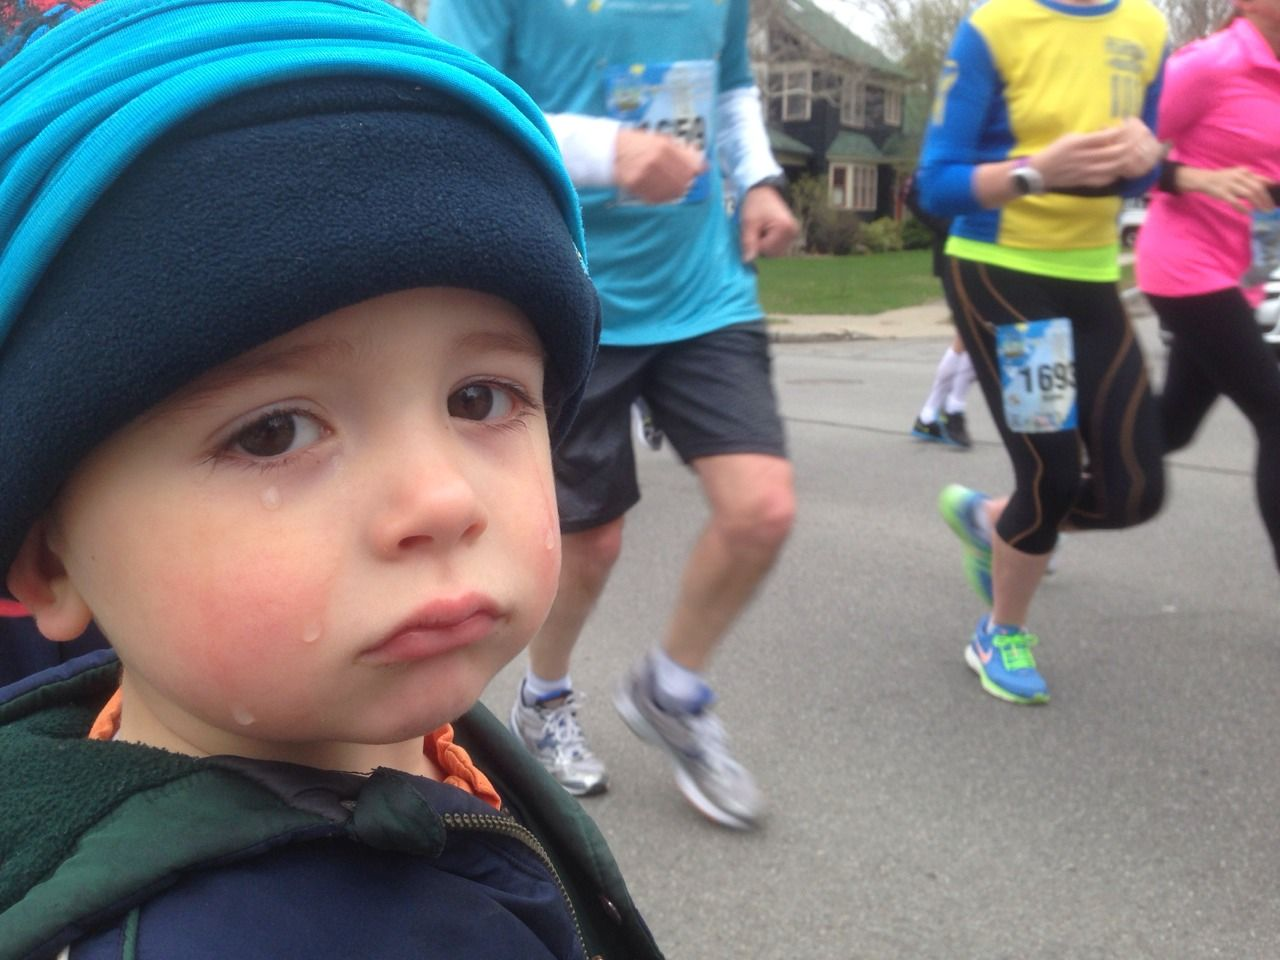 Mommy wouldn't carry him on her 13.1 mile run.